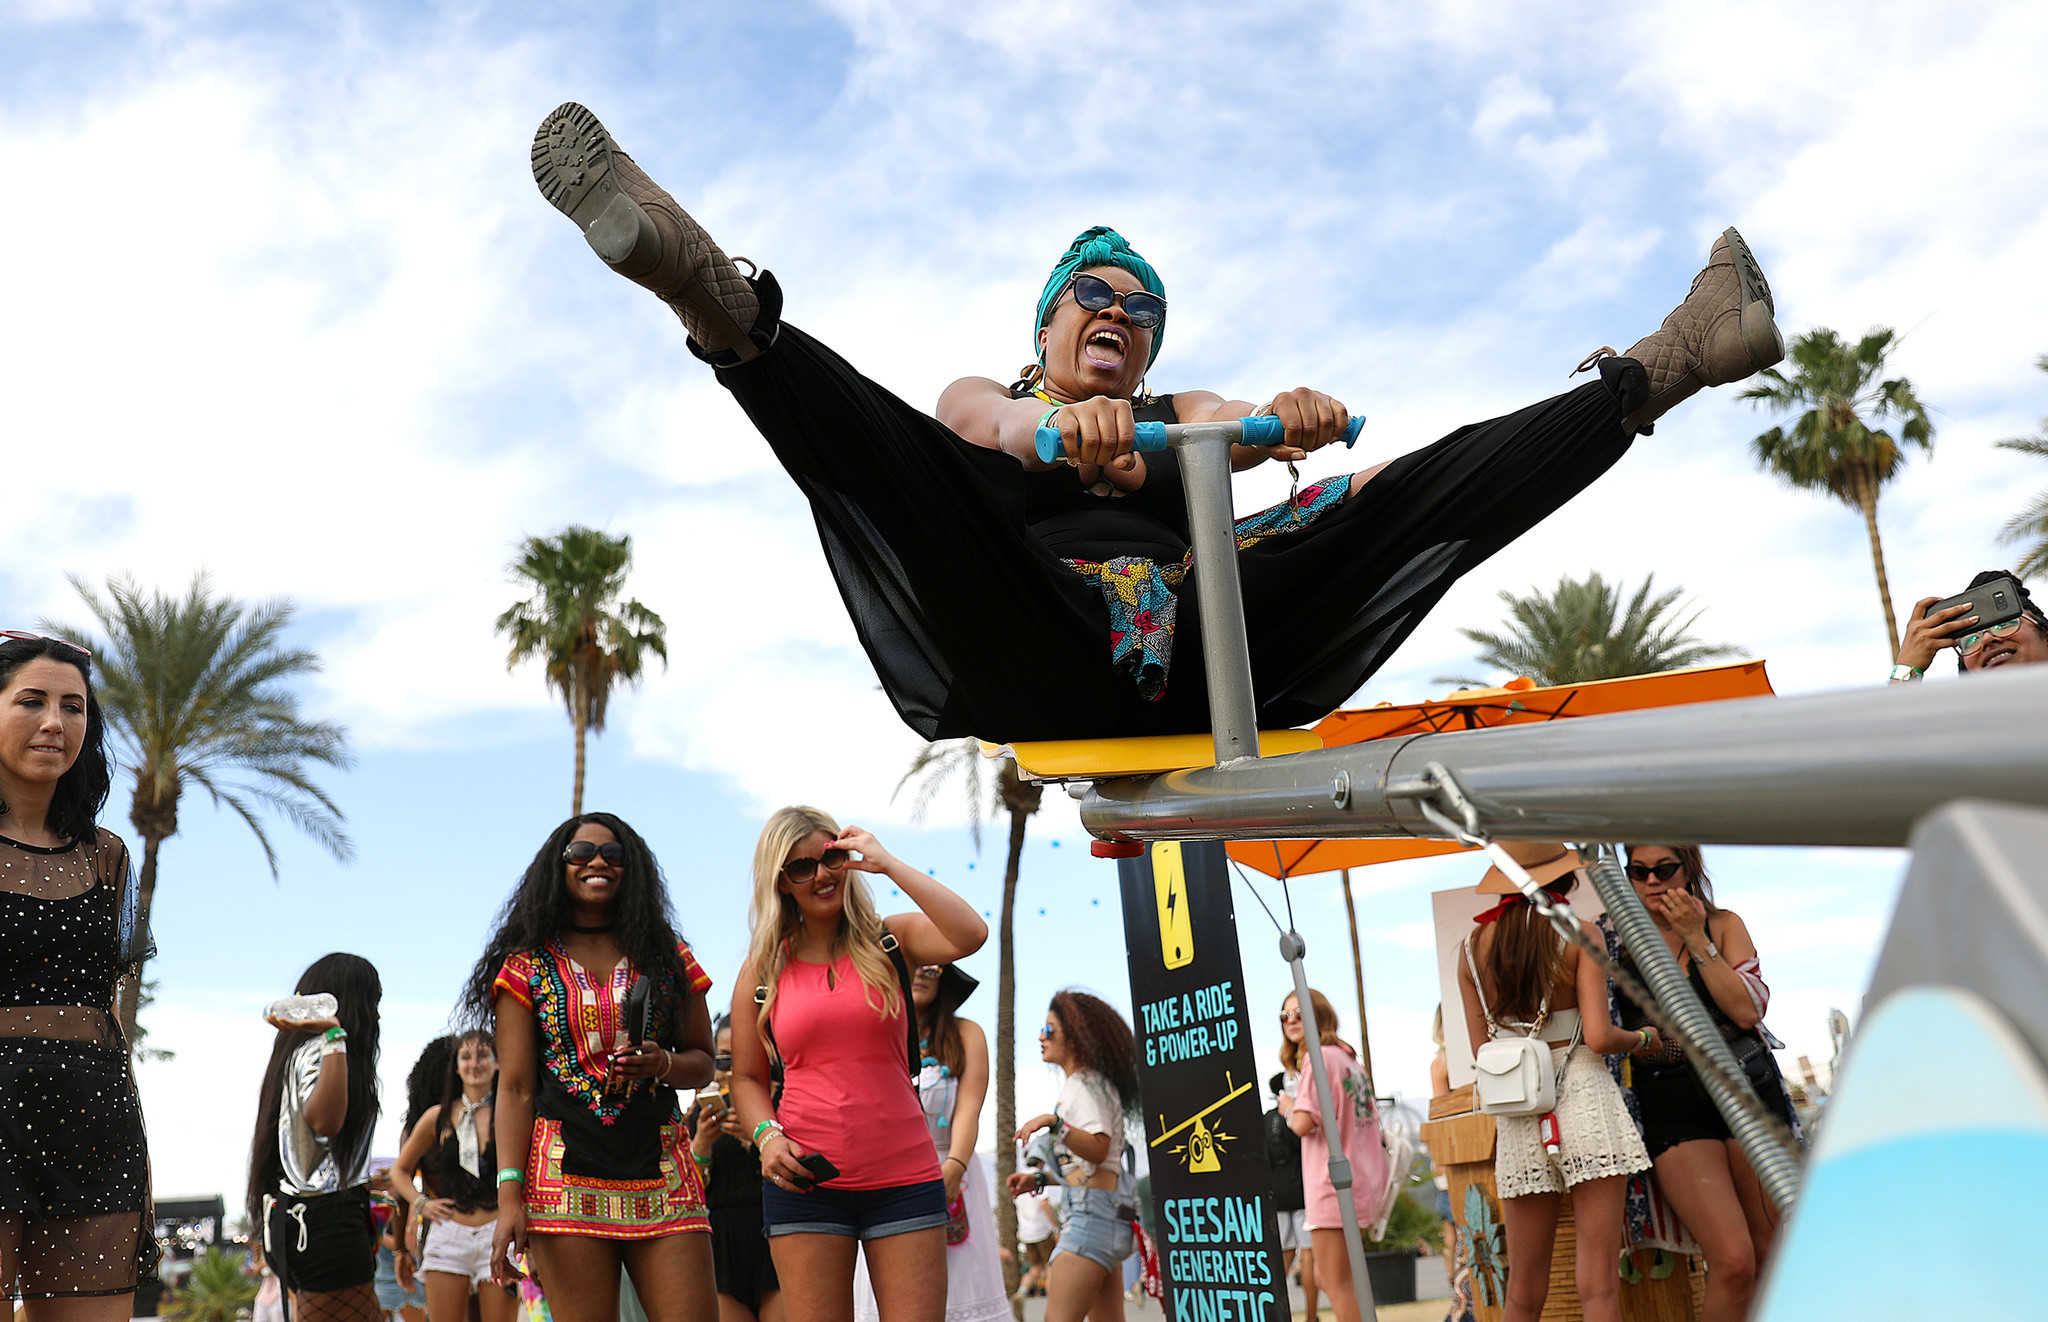 INDIO-CA-APRIL 20, 2018: Jessica Brown, 33, of Oakland, rides a teeter totter at Coachella Weekend 2